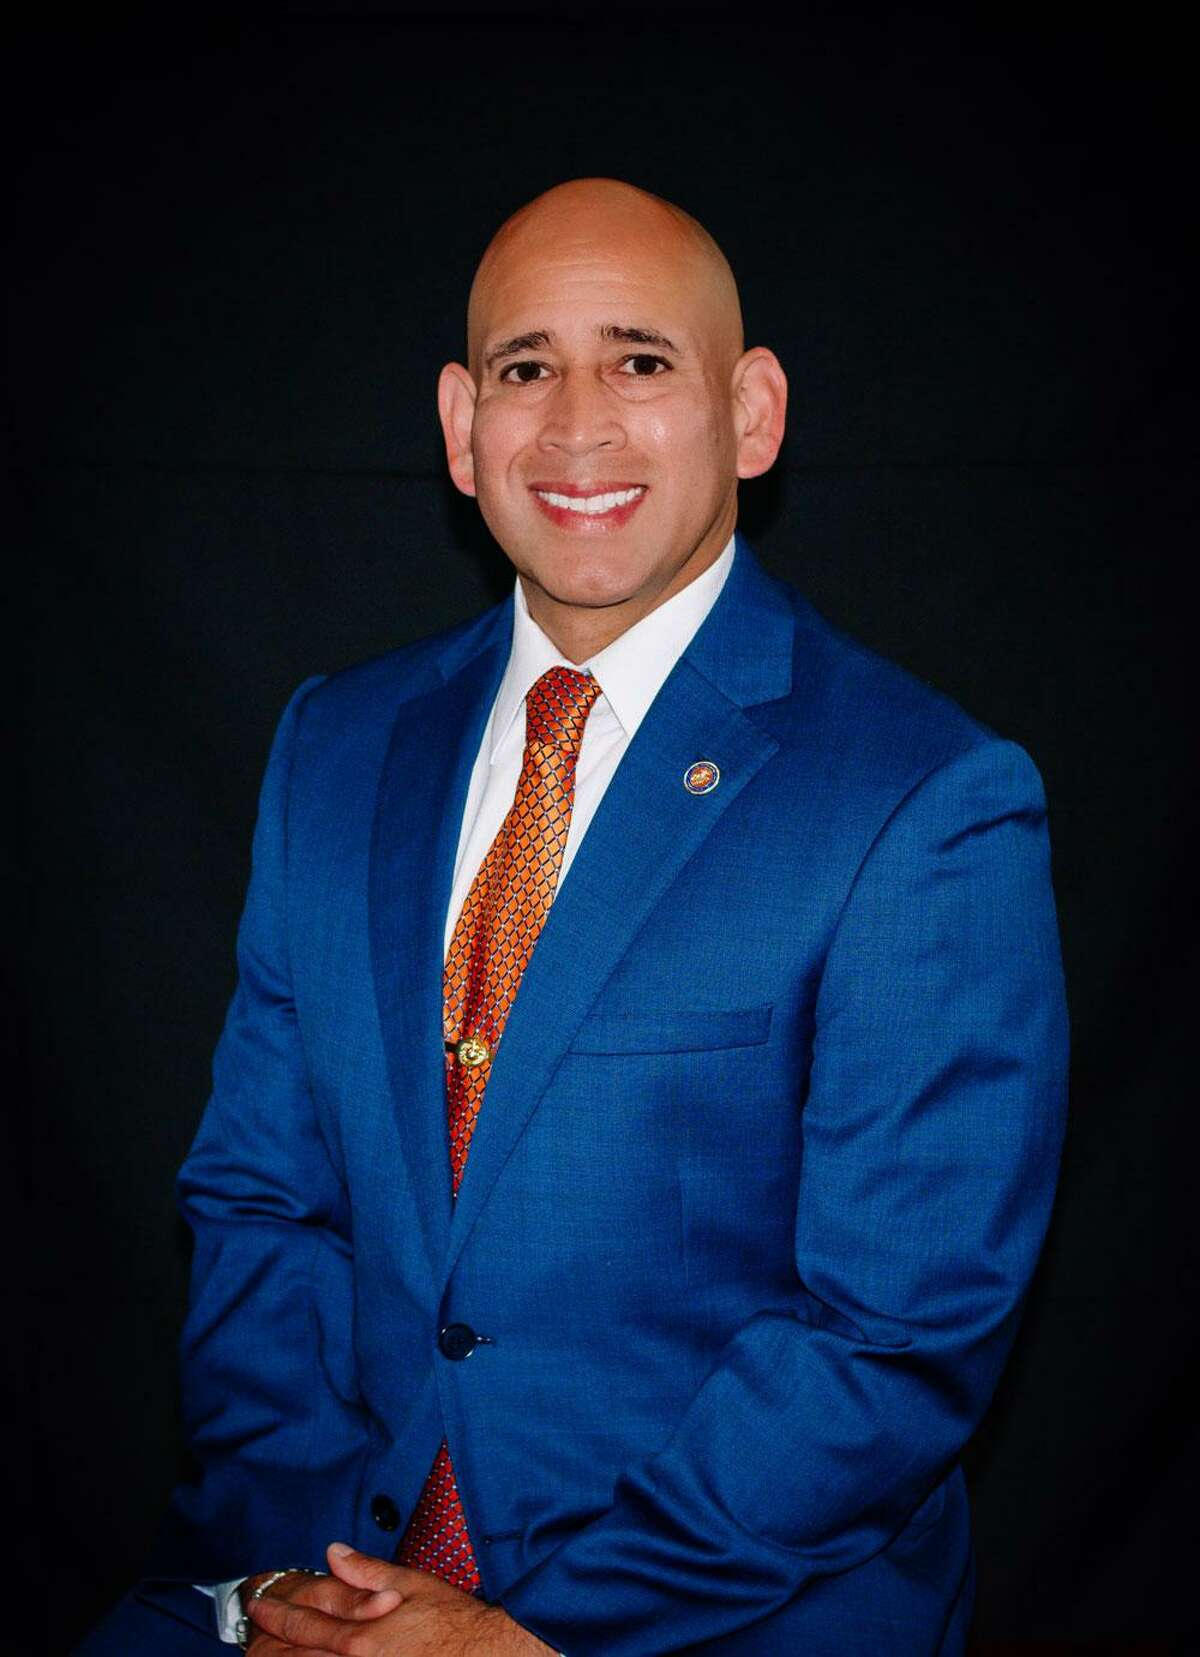 Marine Corps veteran John Lira has launched a campaign for the Democratic nomination in U.S. District 23.